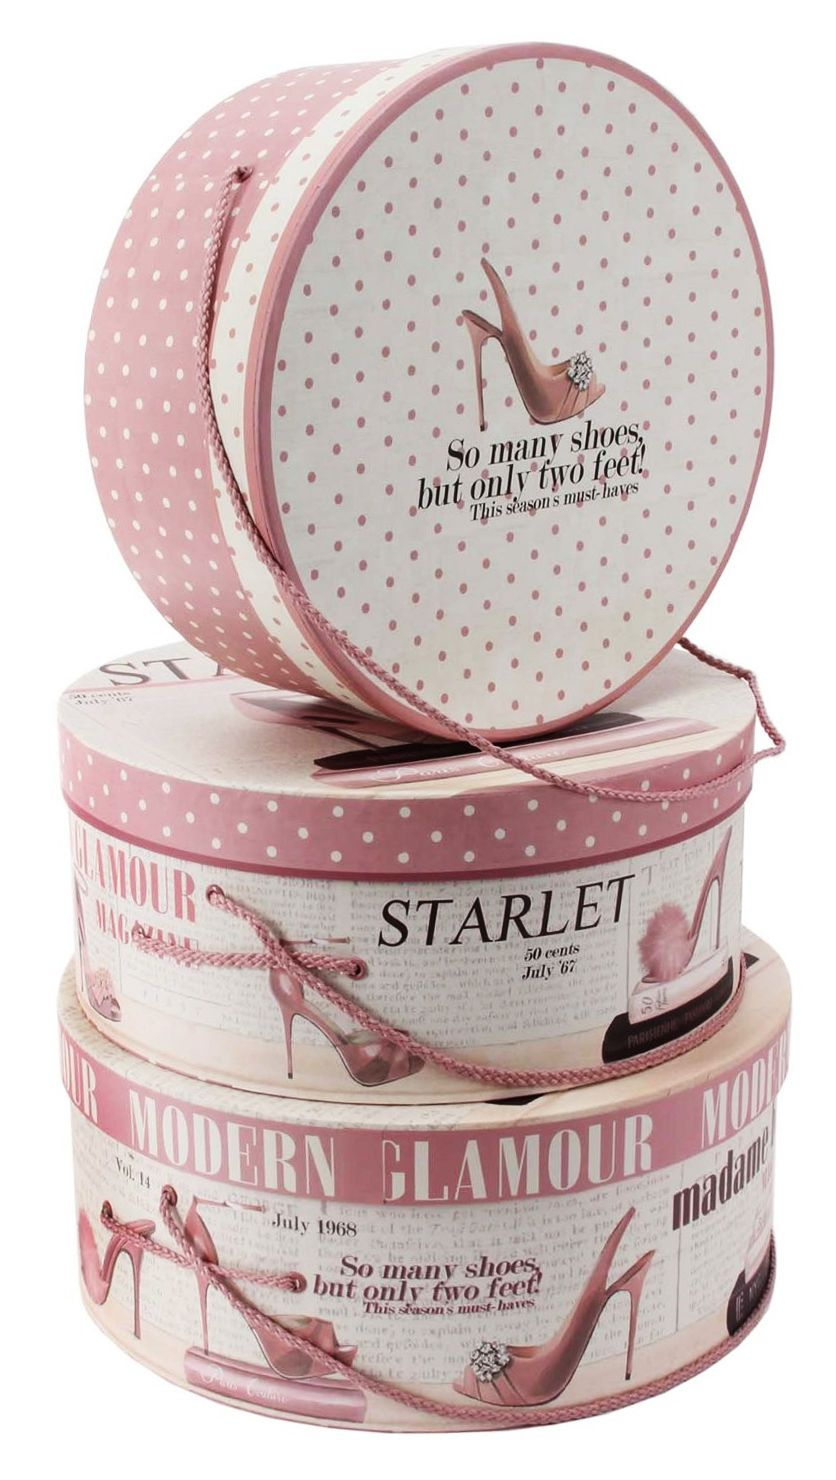 Delicieux Set Of 3 Pink Ladies Fashion Magazine Round Hat Boxes Storage Box Set Decor  Gift | EBay